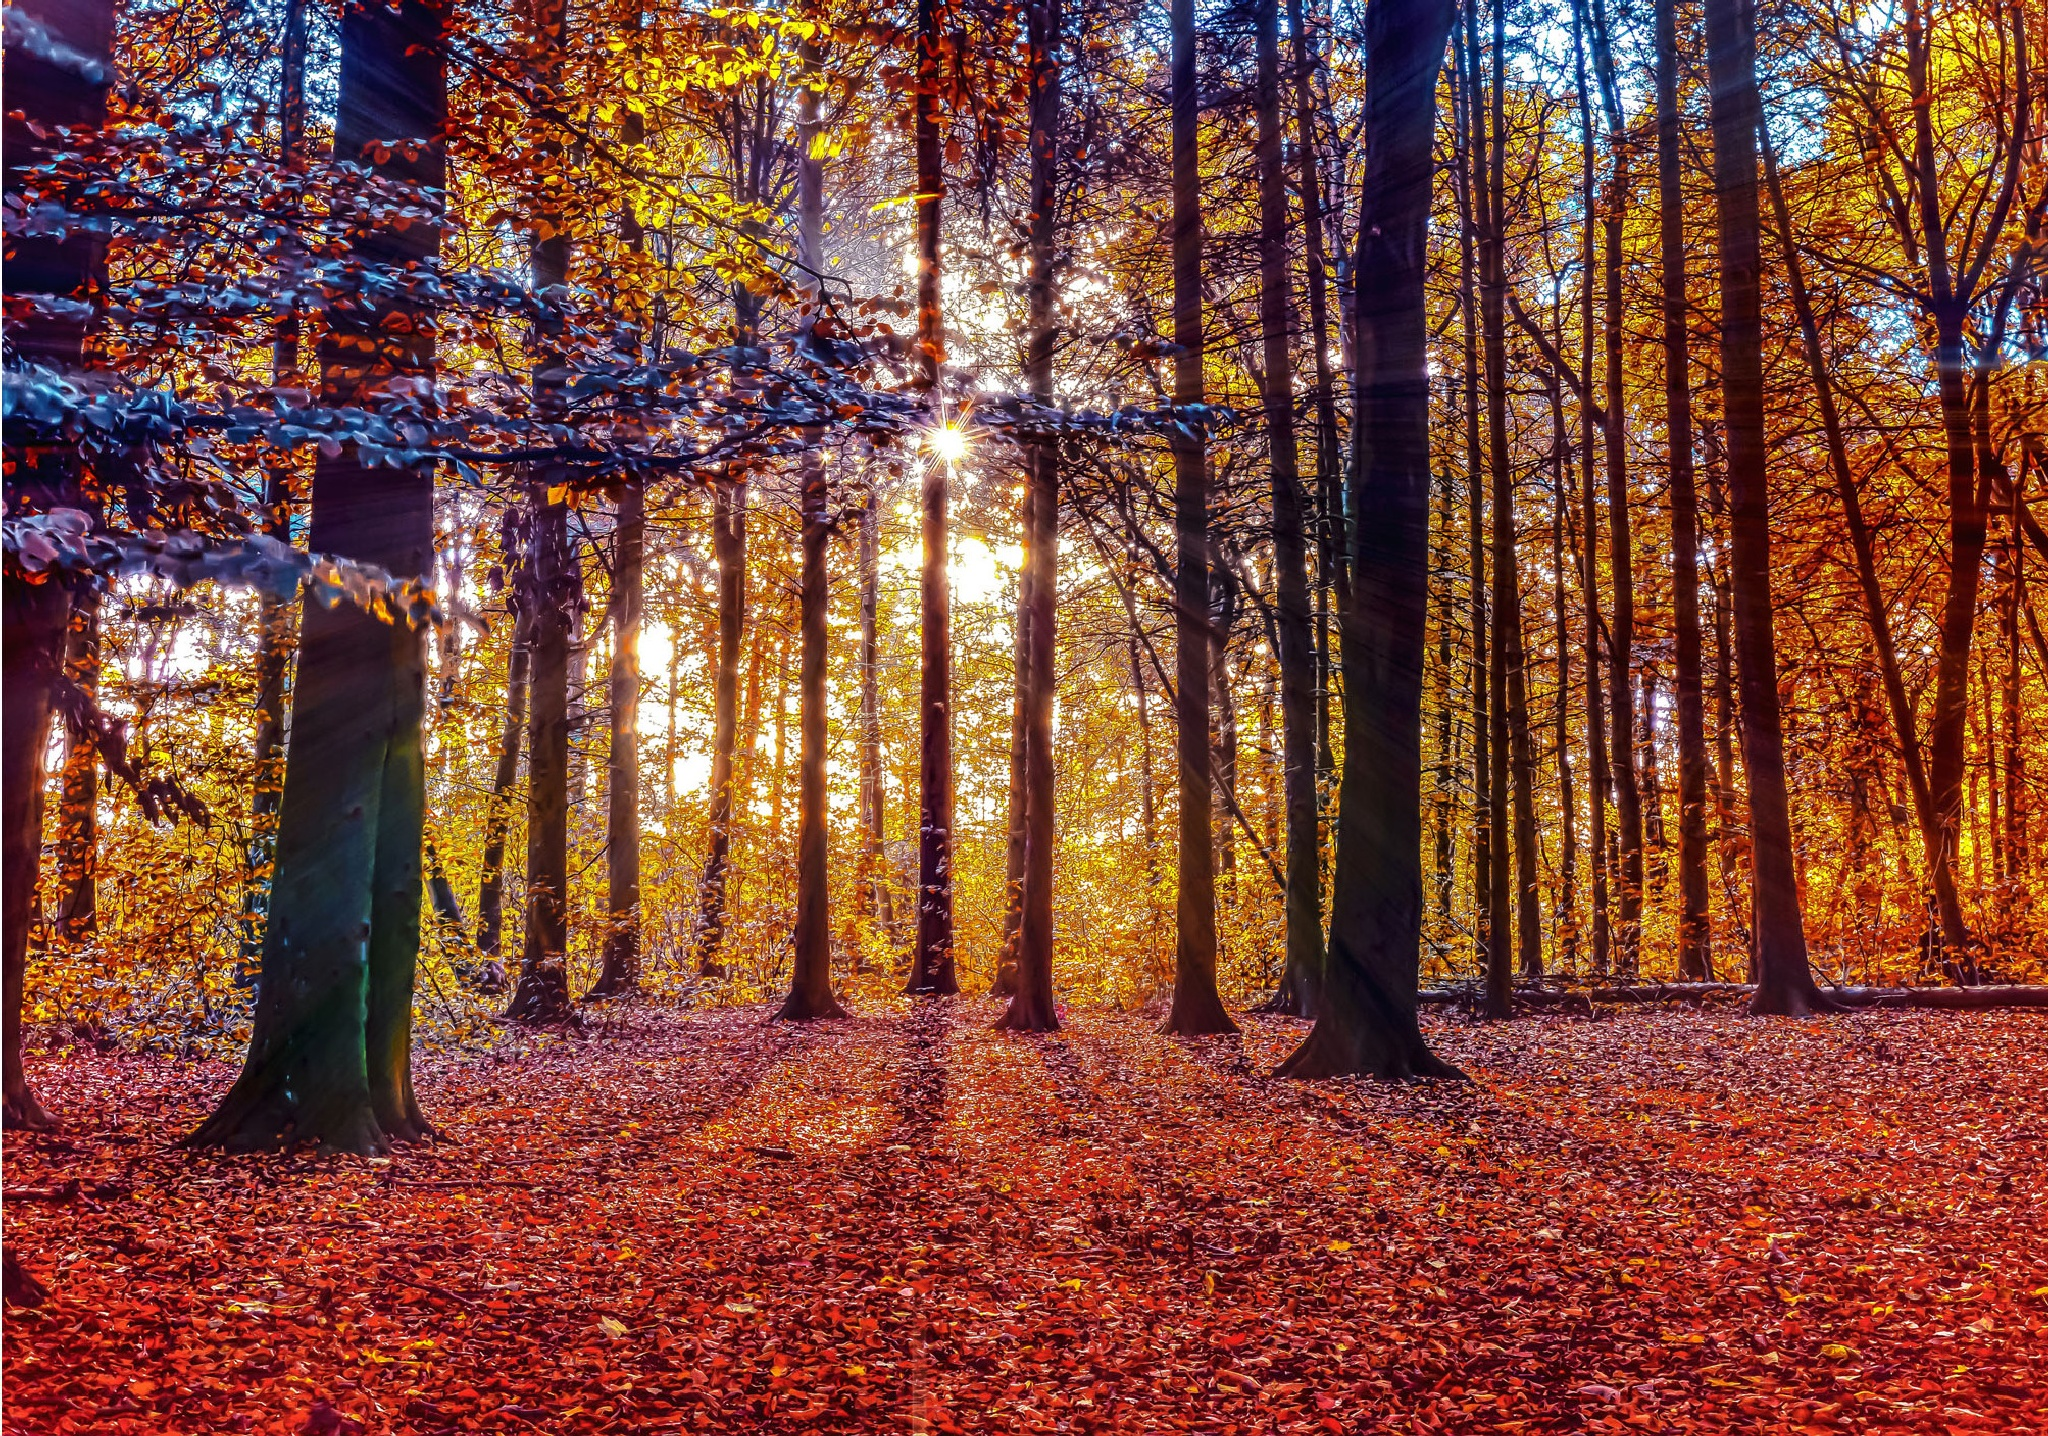 Autumn forest by piotr j